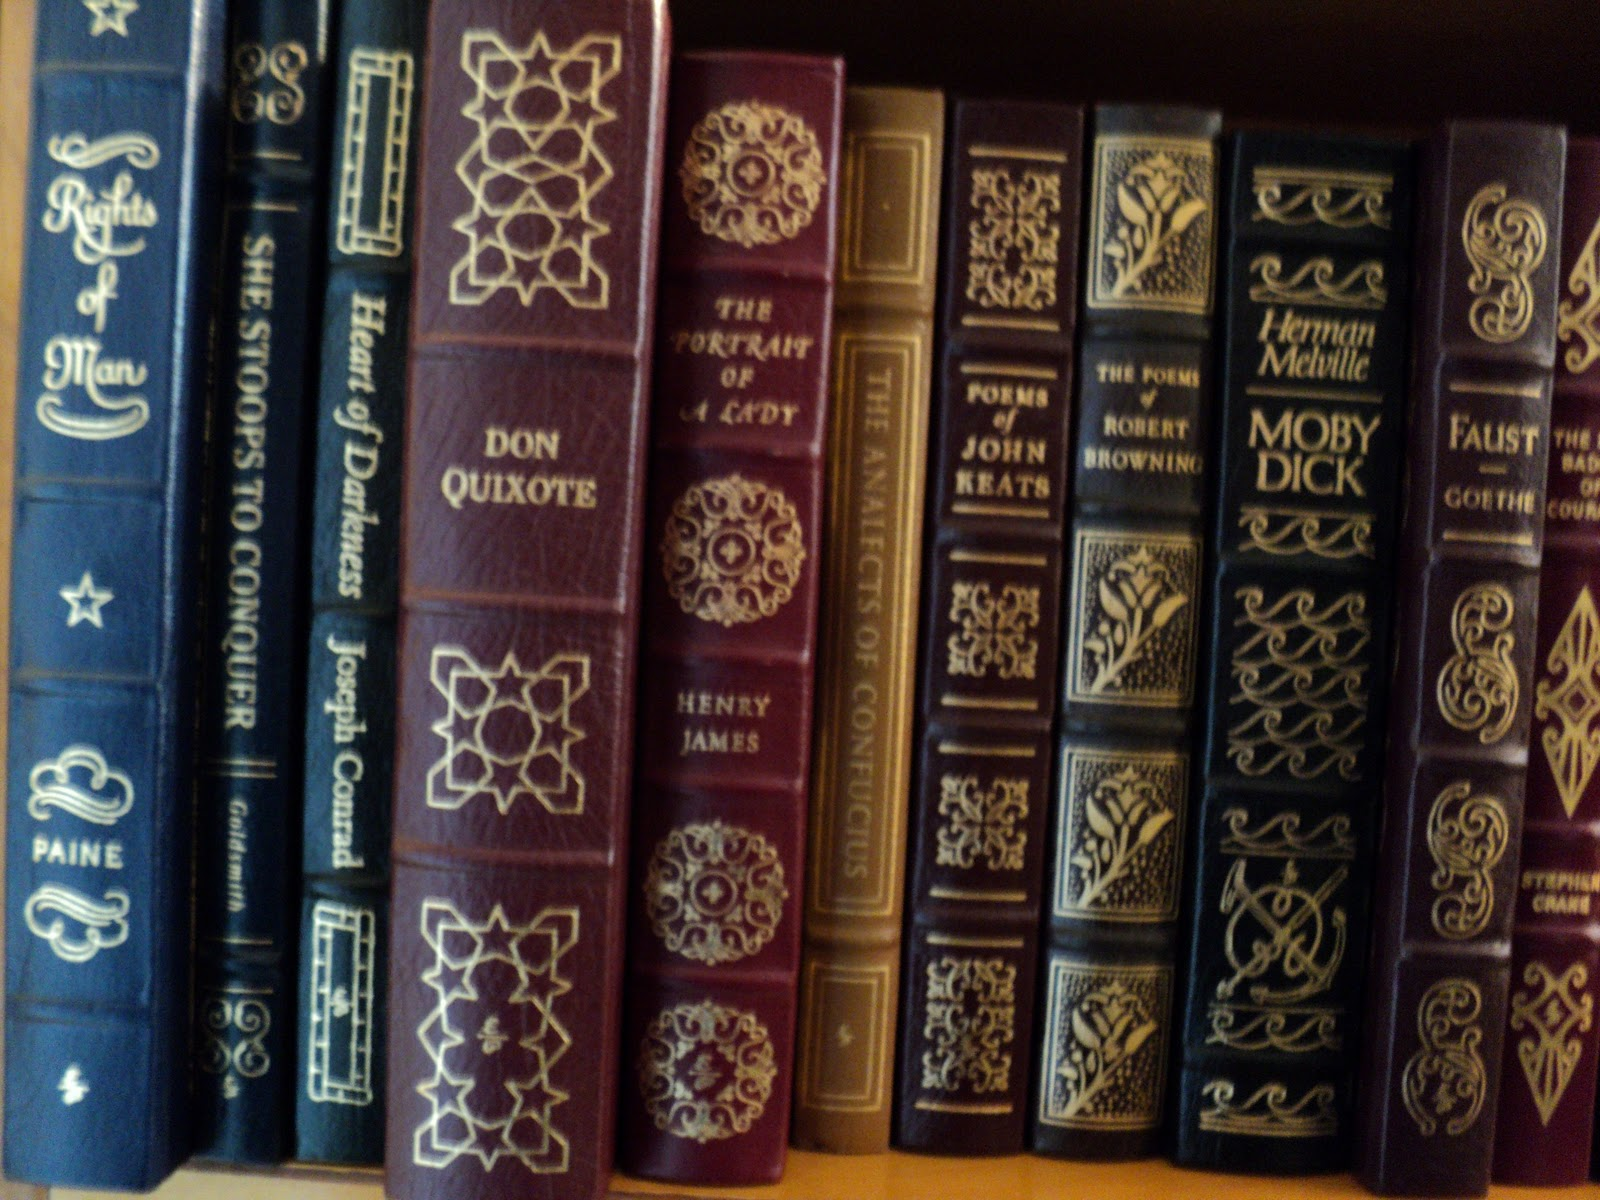 Easton Press Poetry of Elizabeth Browning - 25 vol LIBRARY OF GREAT POETRY Set